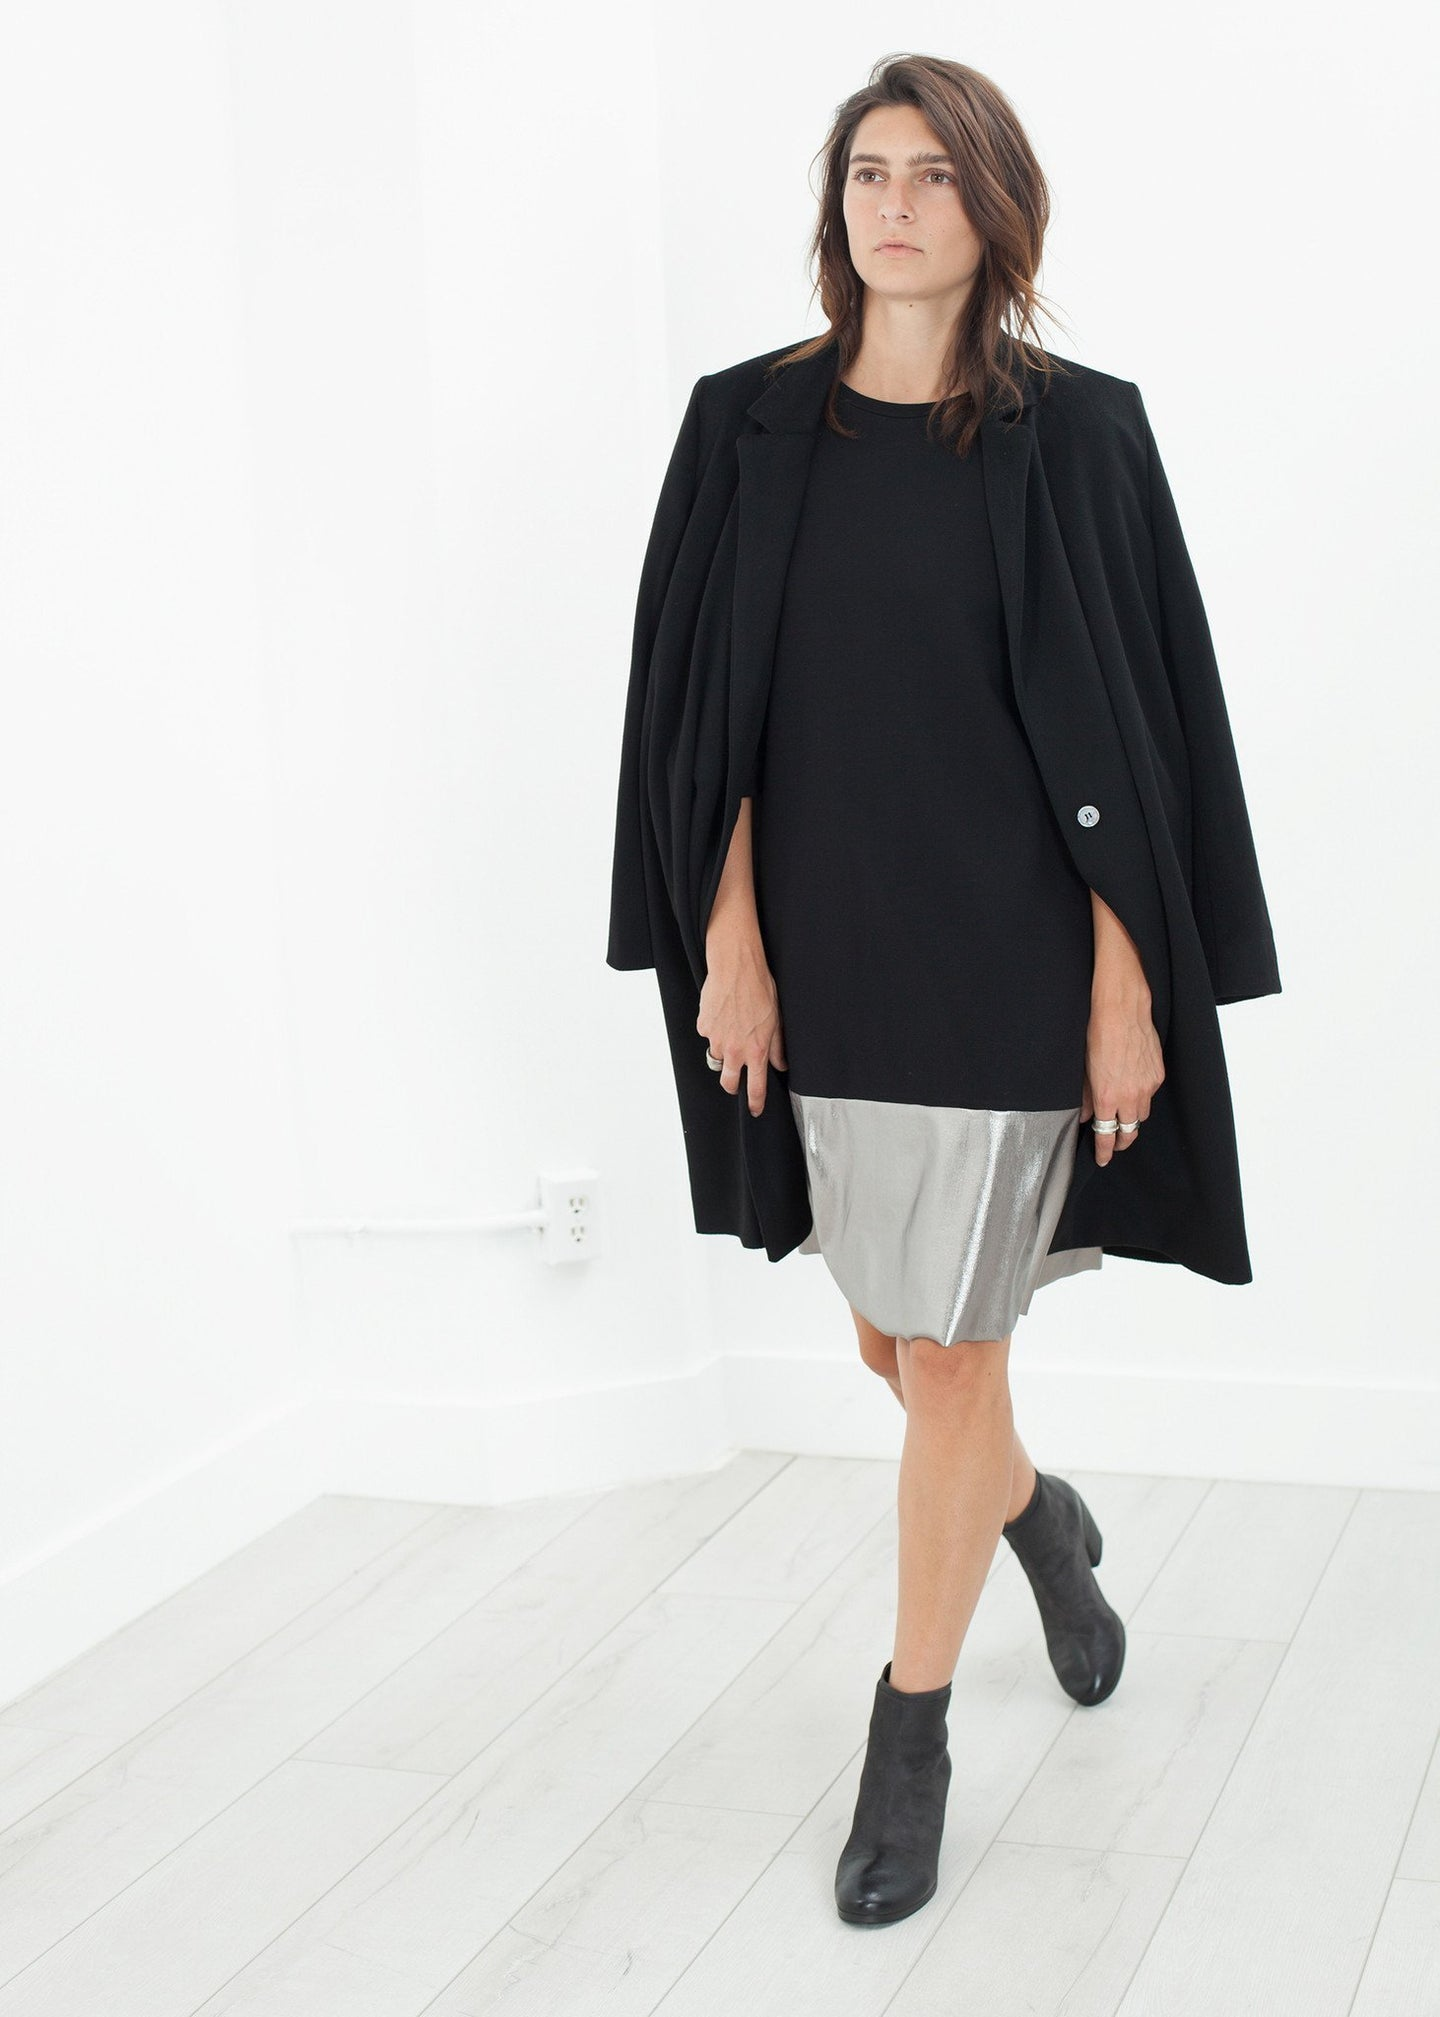 Border Dress in Black/Silver